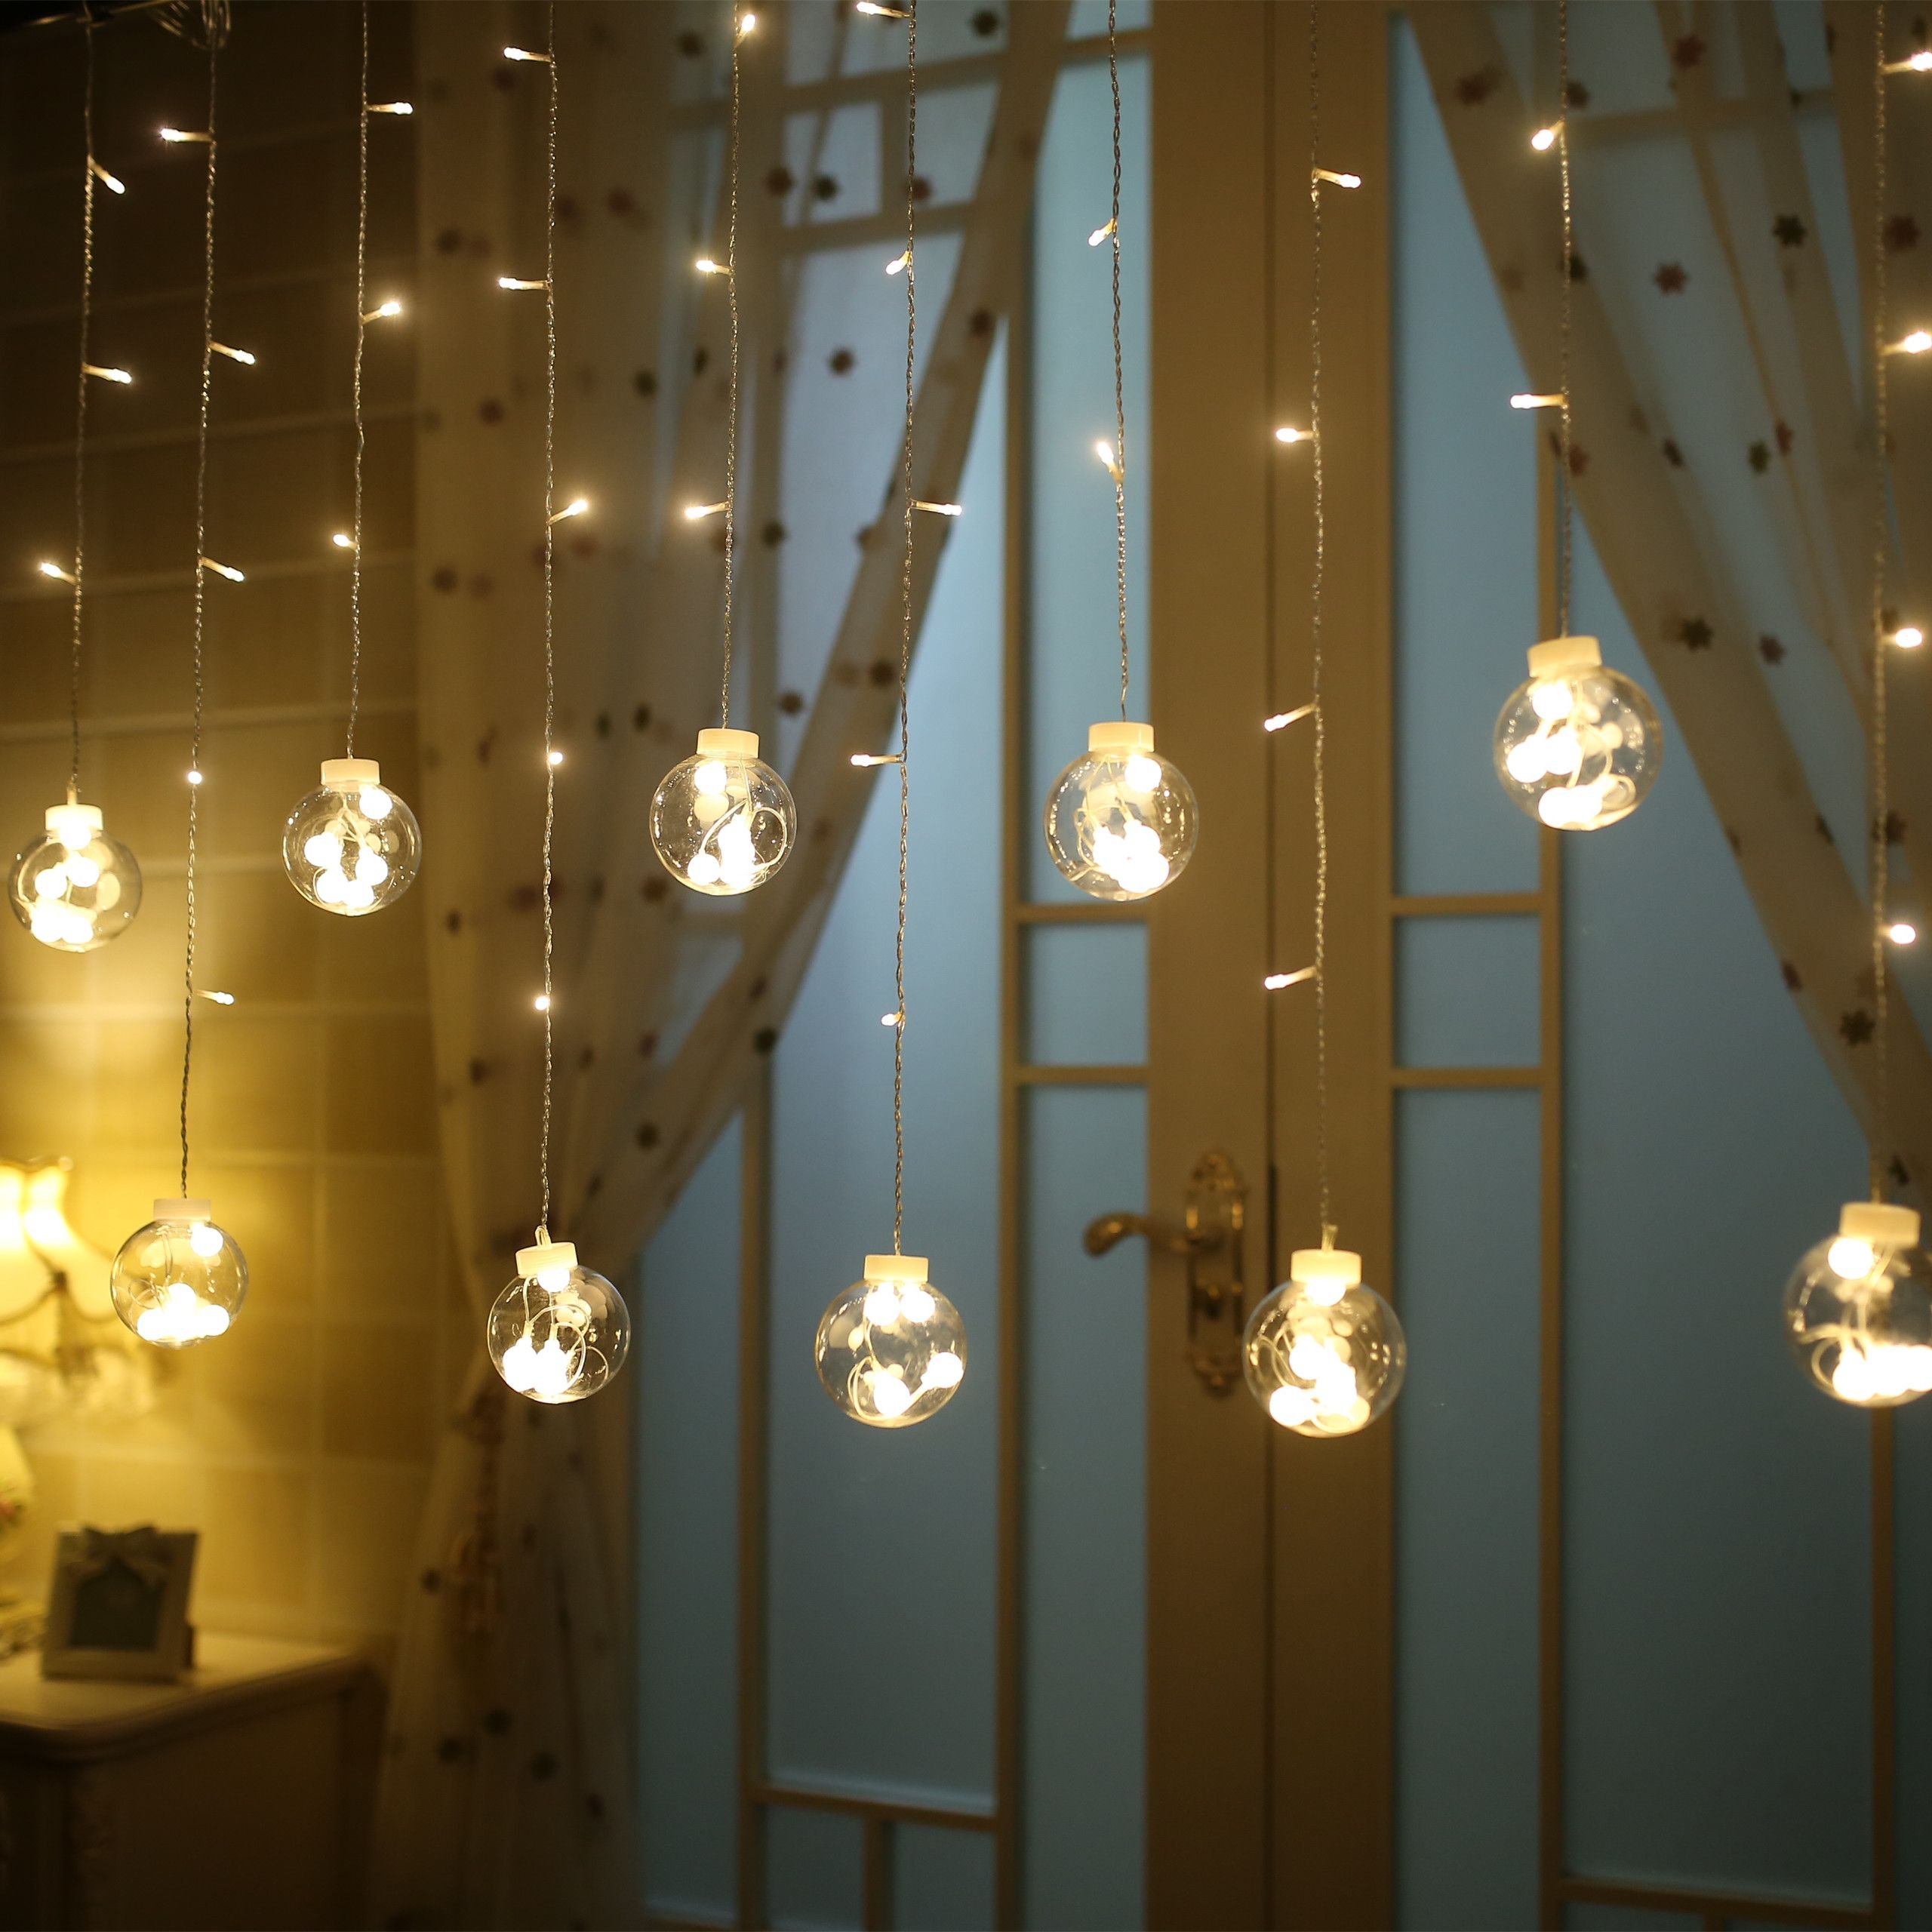 Cheap String Lights, Buy Quality Decorative Lights Directly From China